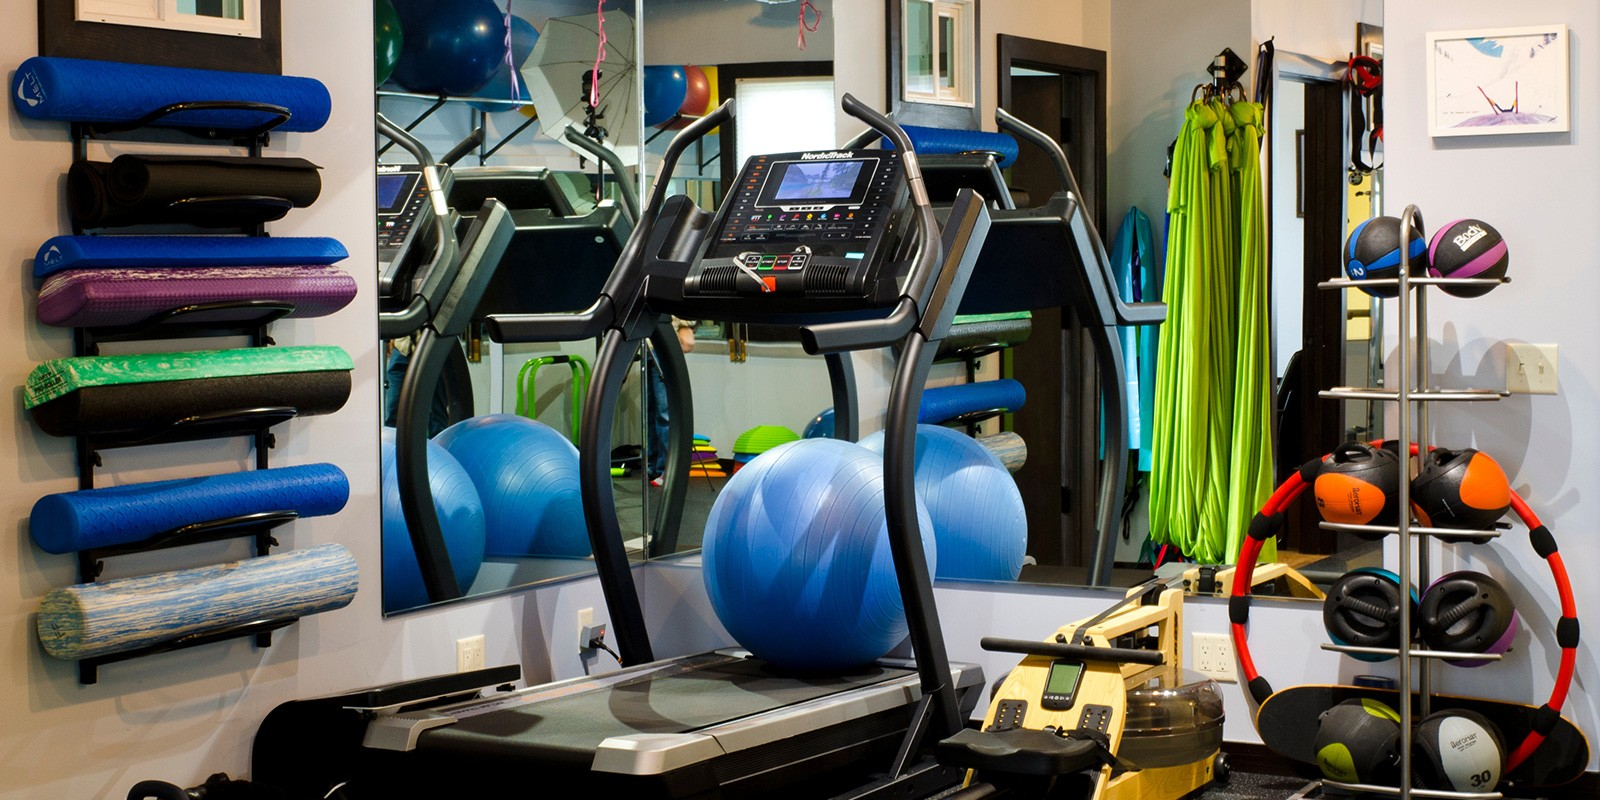 Engage in personal training and wellness programs in our pristine state-of-the-art facility